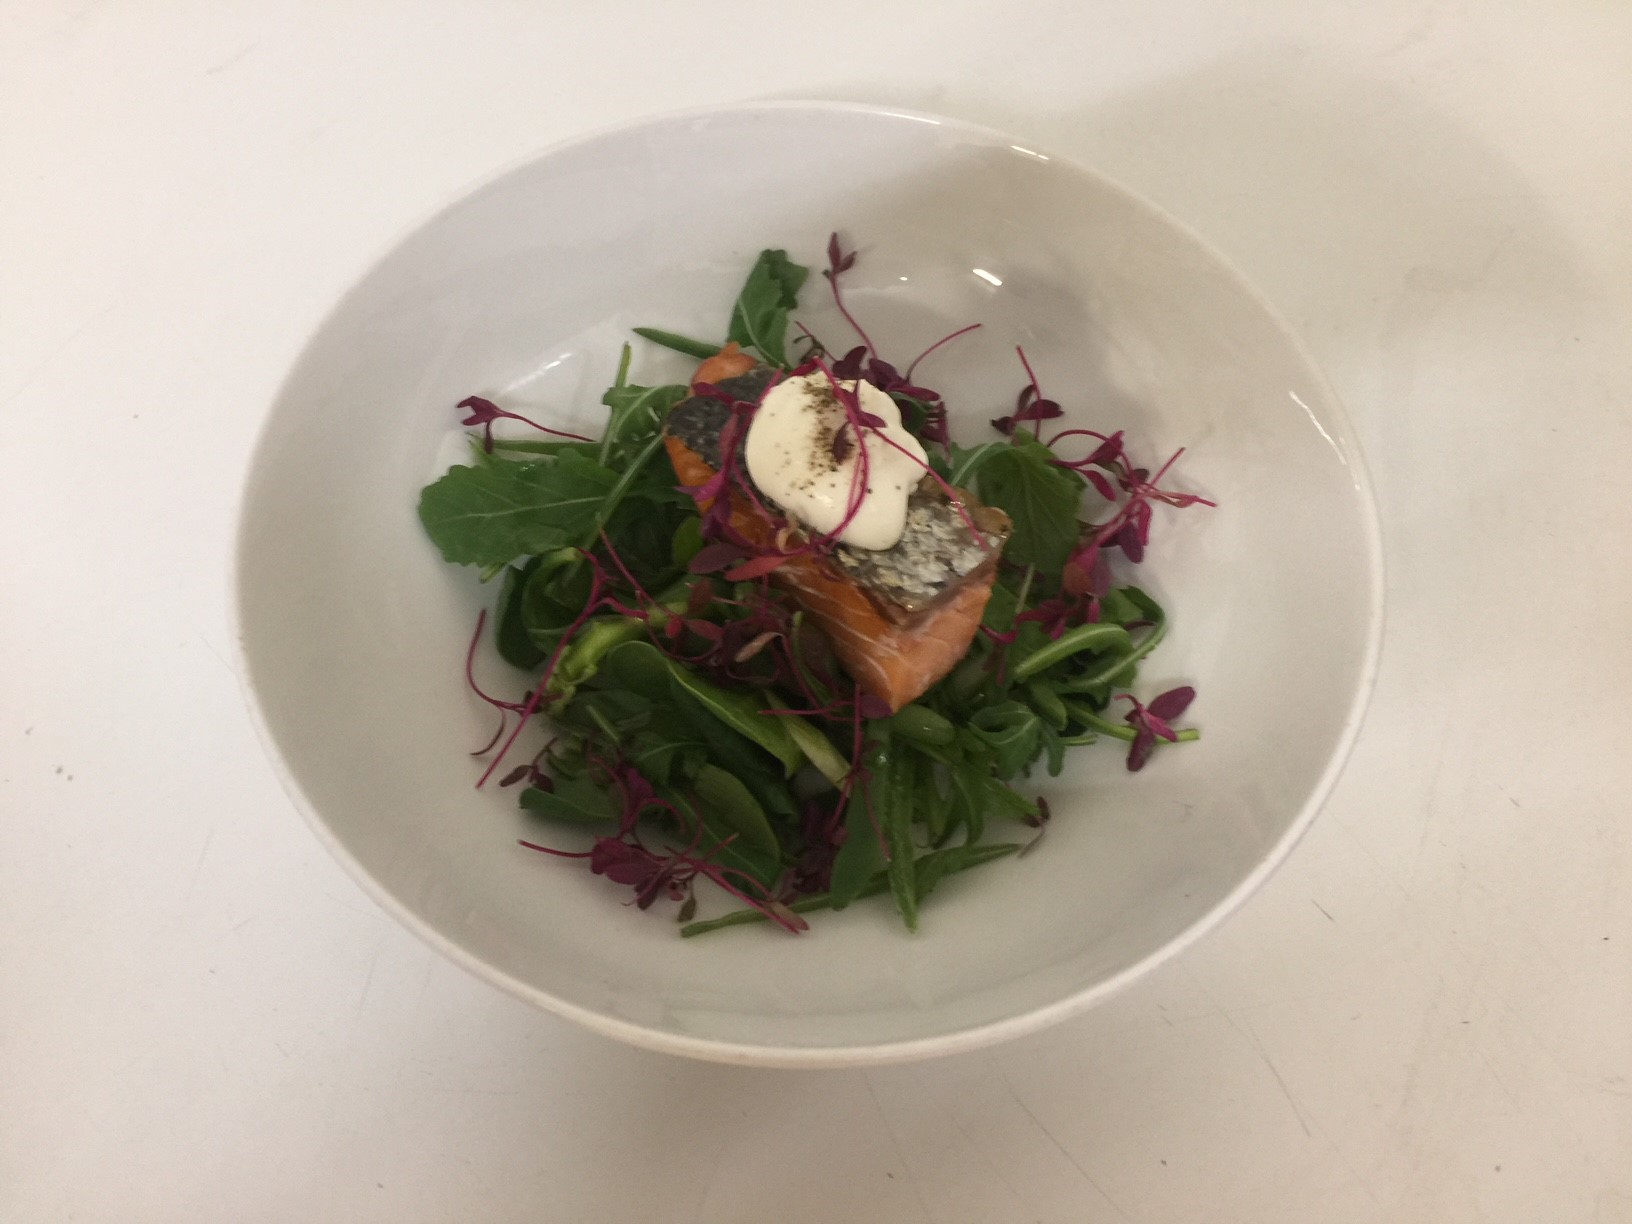 Hot Smoked Scottish Salmon - Shaved Raw Green Salad, Red Amaranth & Crème Fraiche